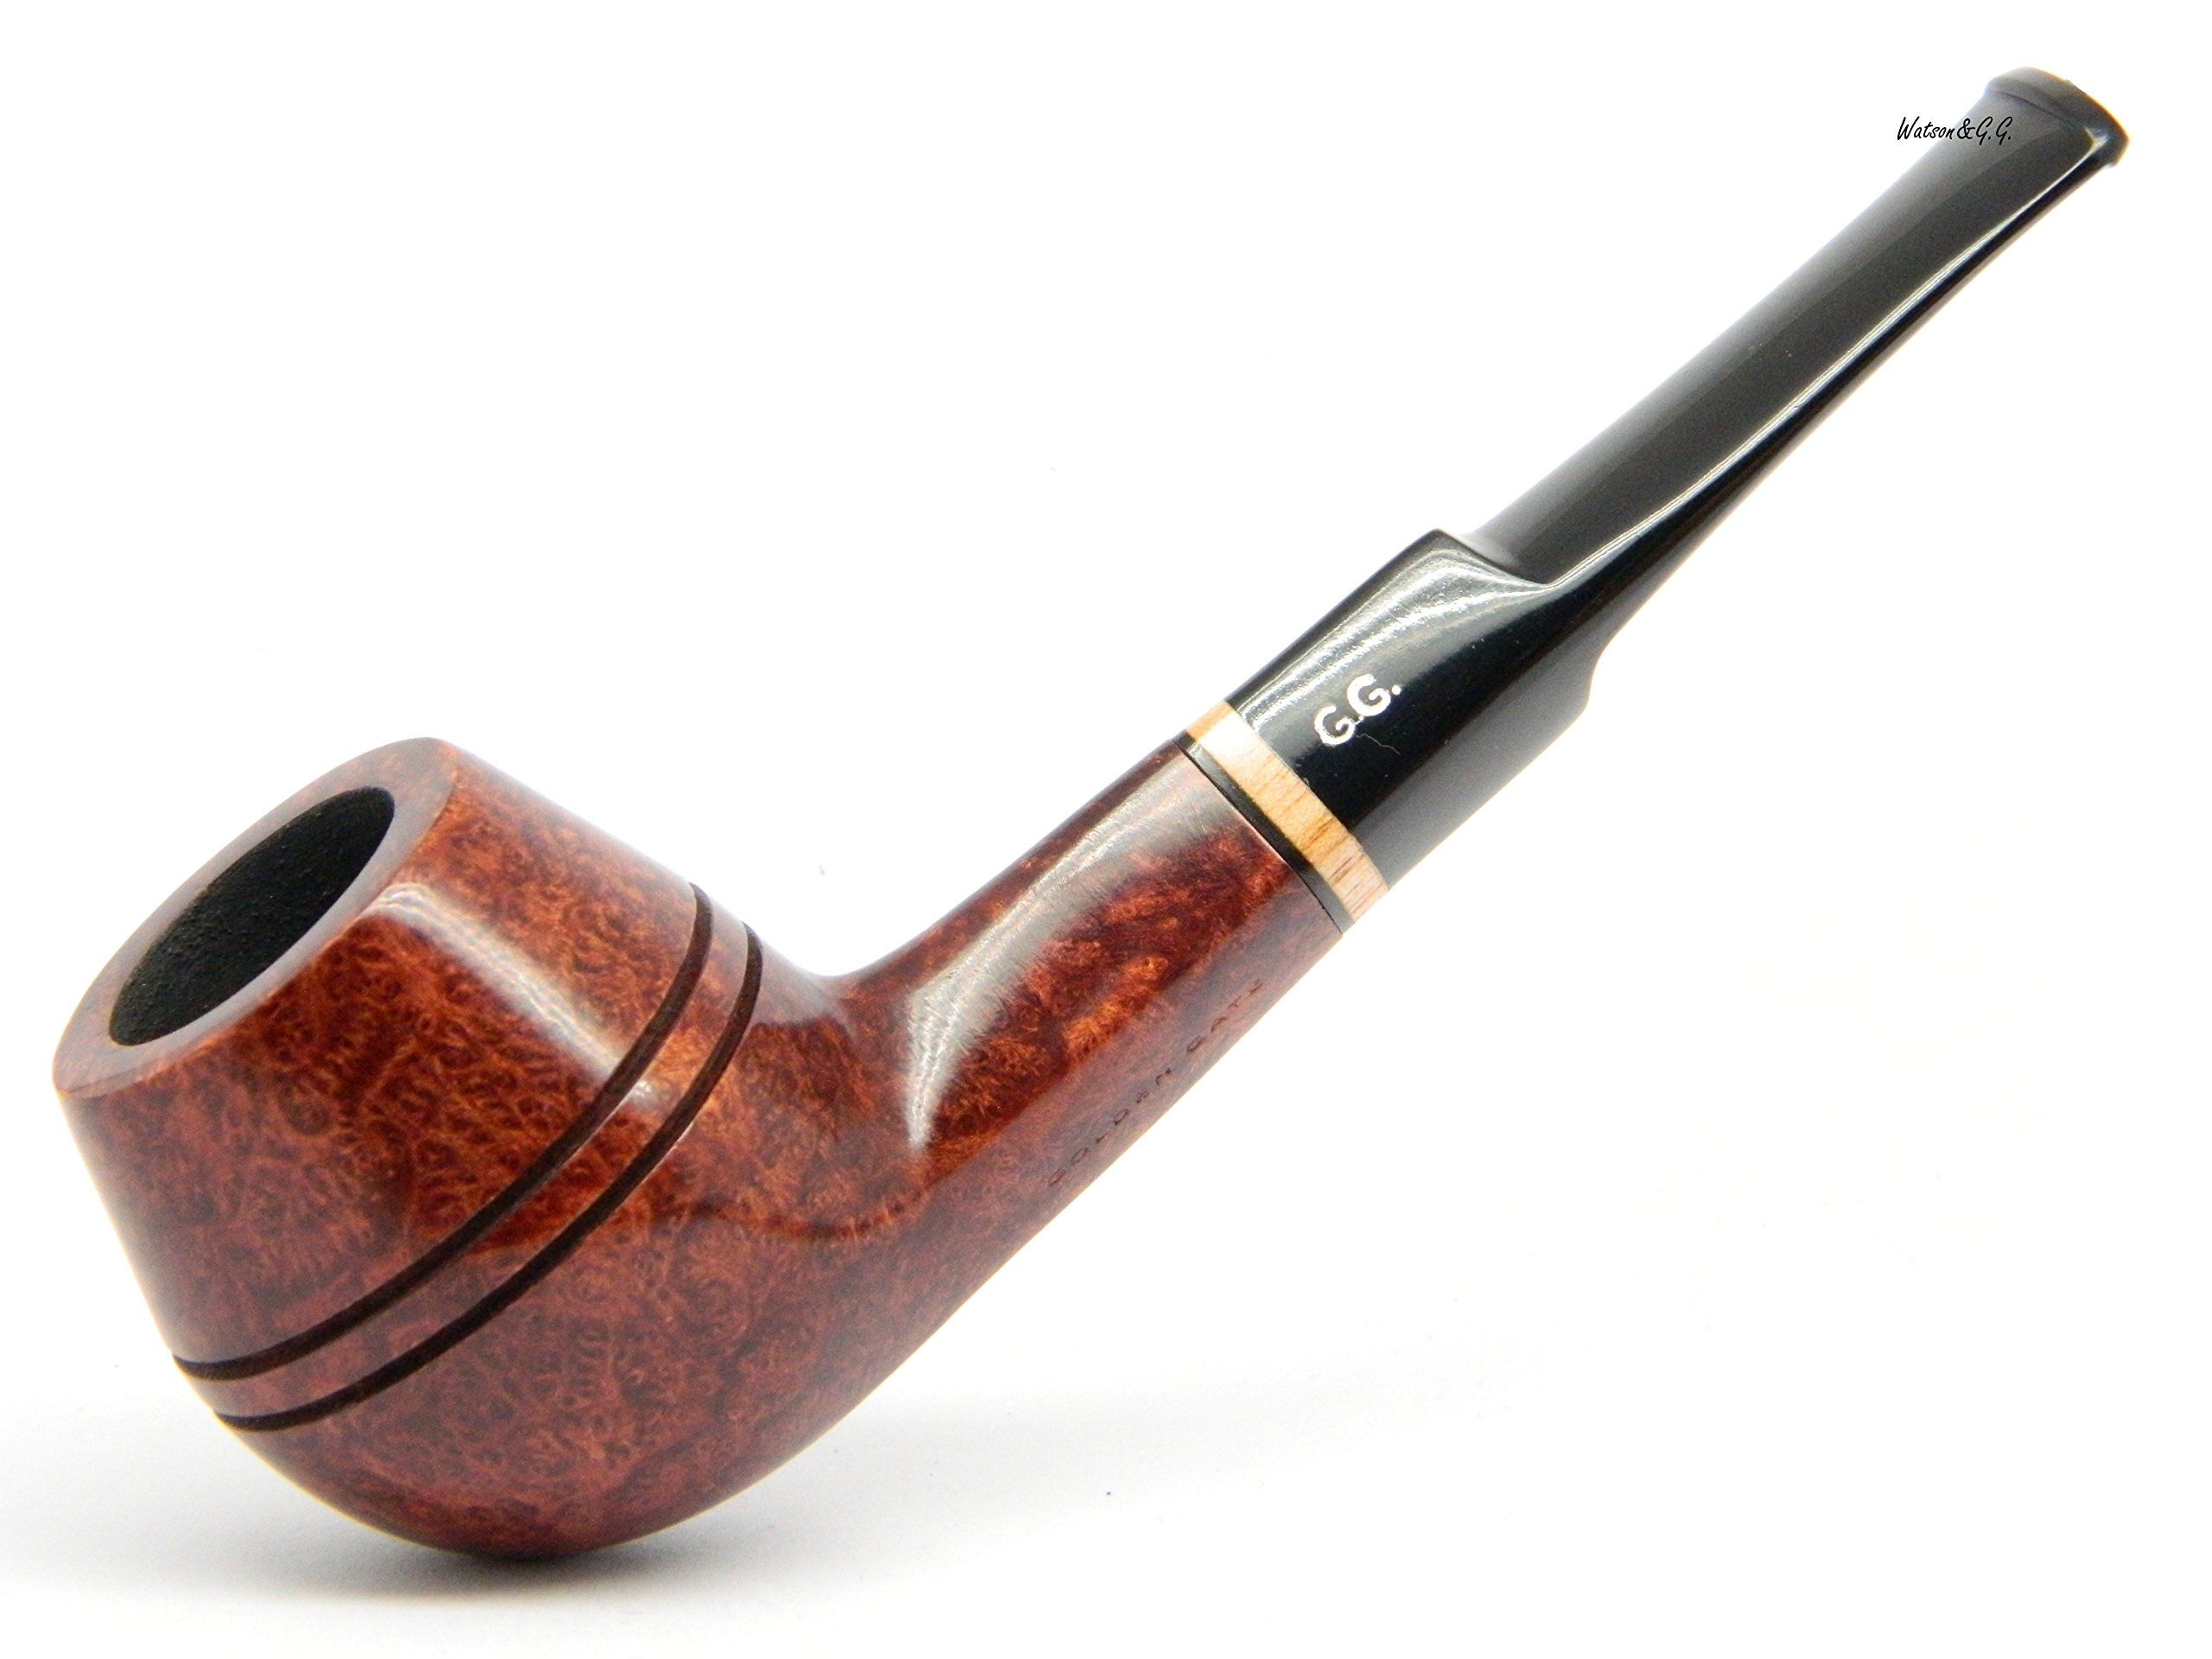 Watson&G.G. - Tobacco Smoking pipe - Bulldog - Hand Made (metal cooling filter) (Special edition for Watson) (Mahogany)